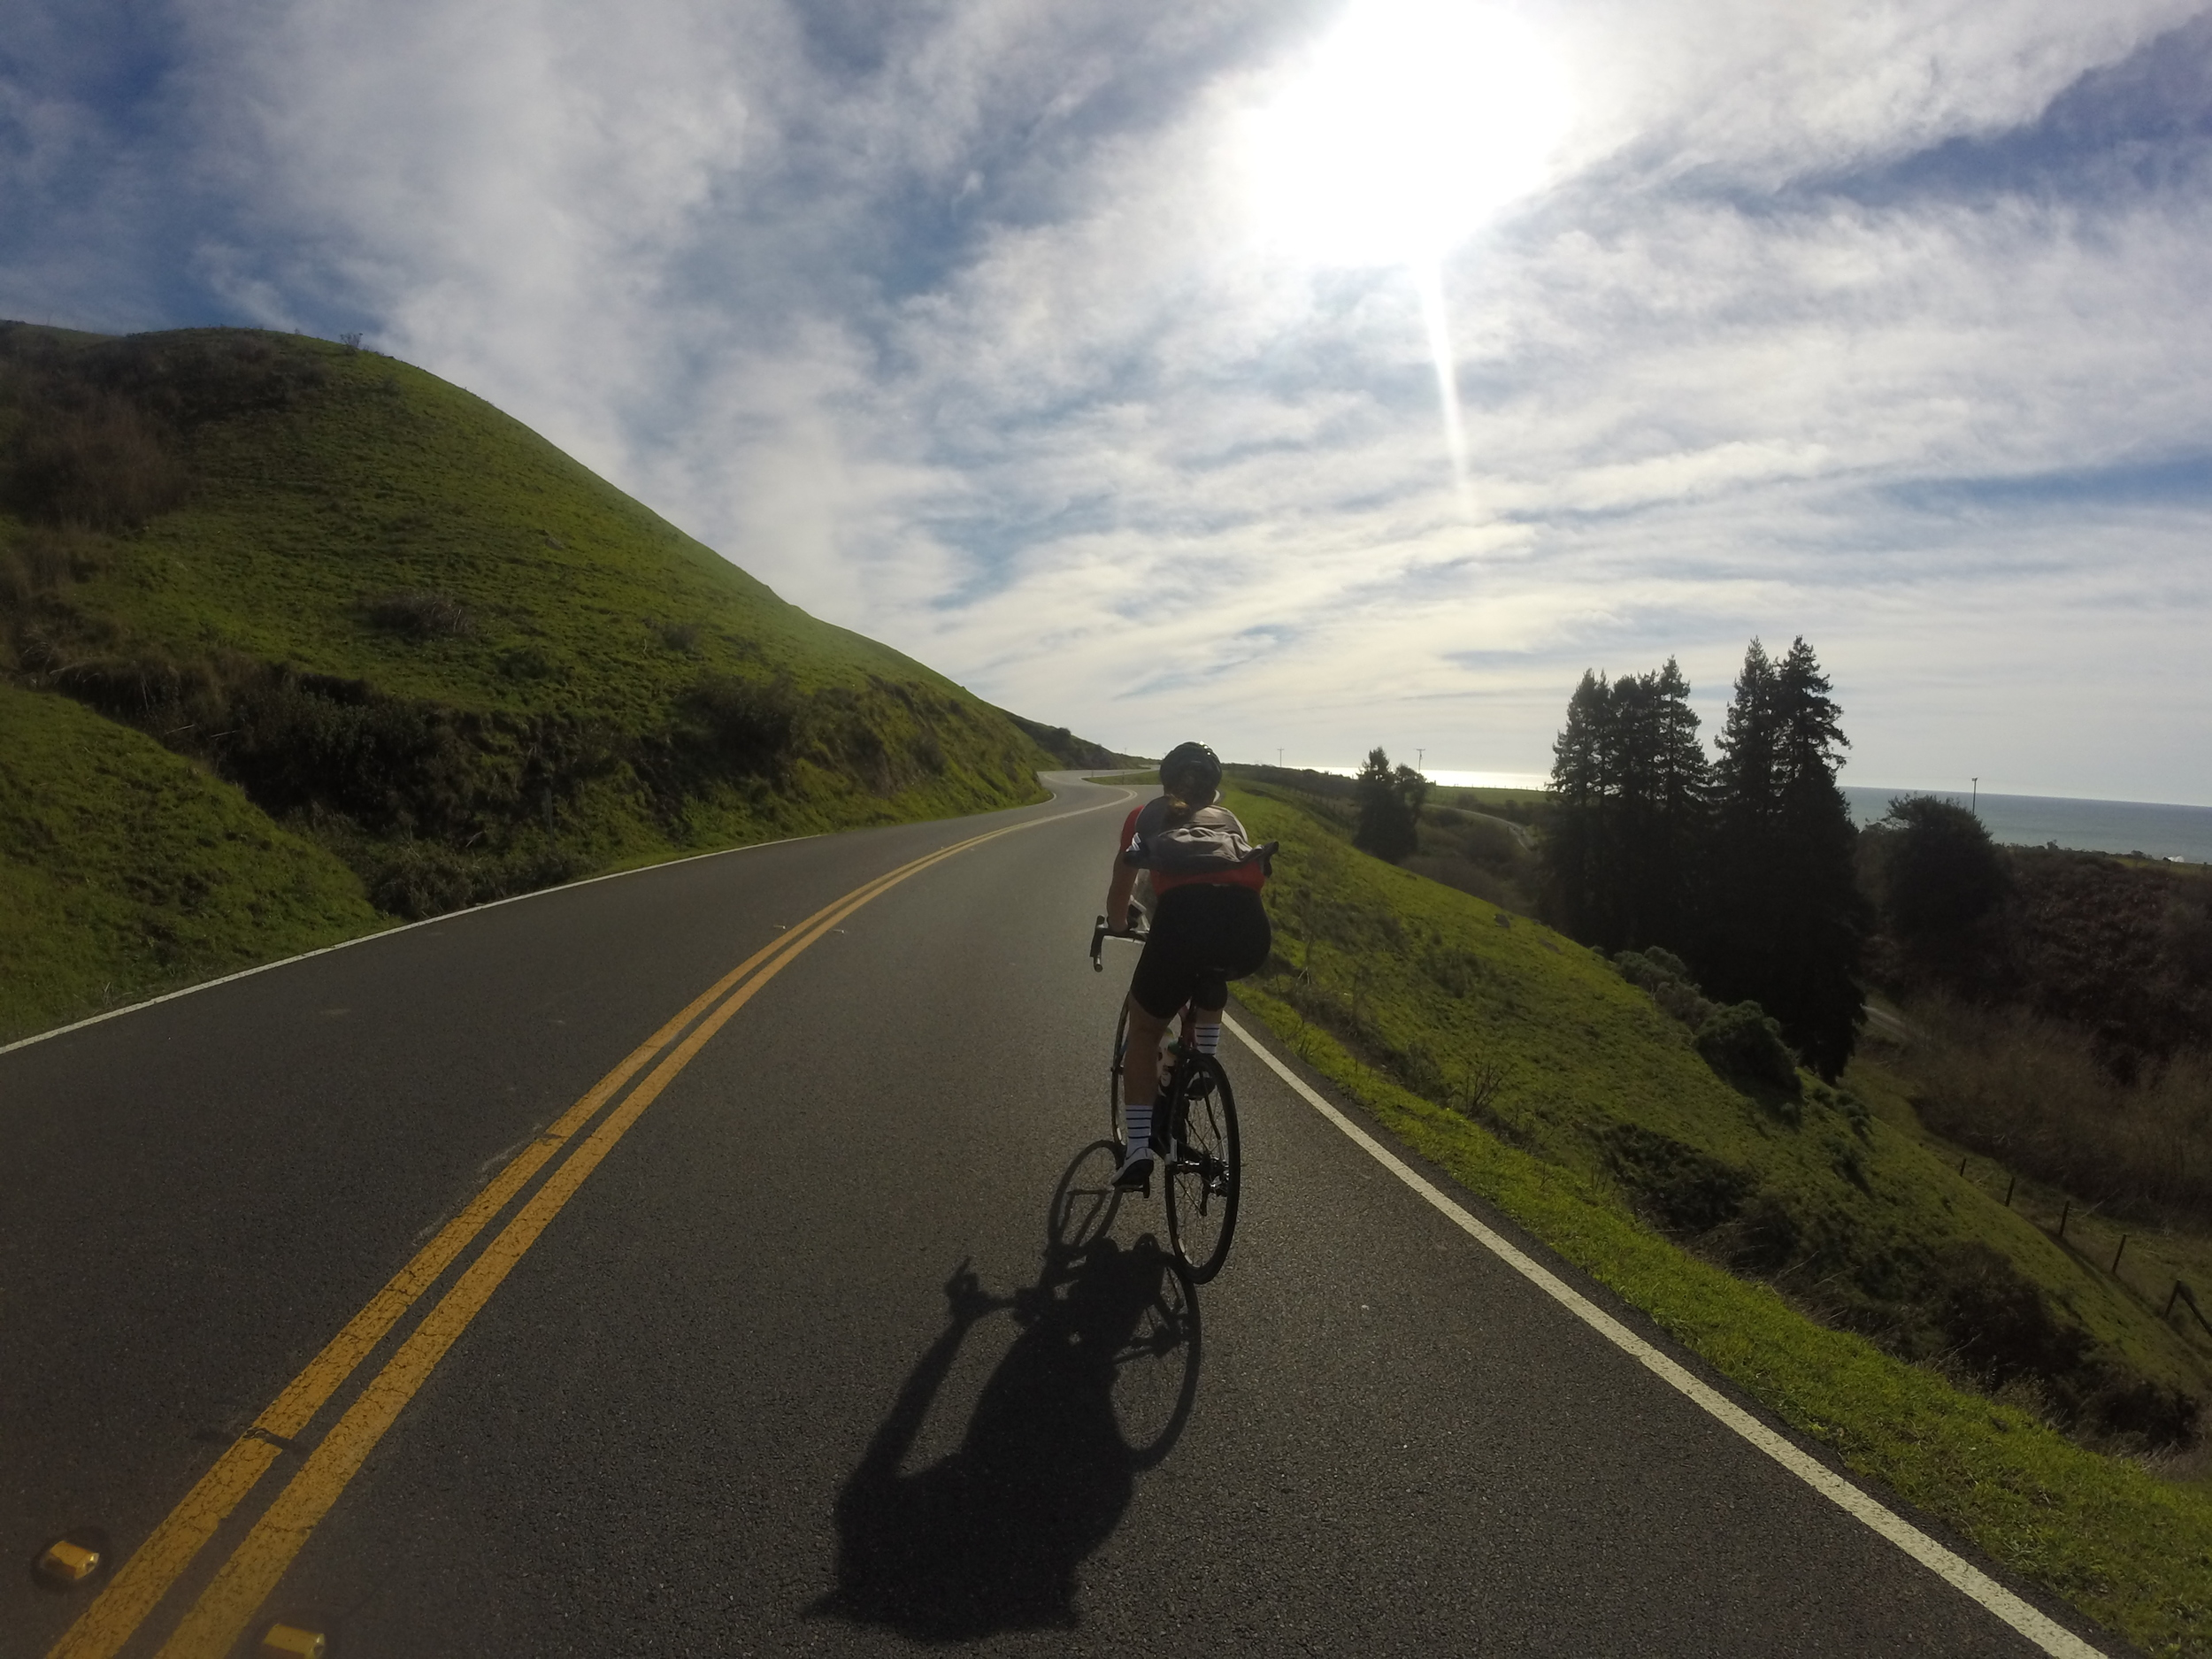 Once you get within 10 miles of Jenner everything turns green, twisty, and incredible! Such a beautiful stretch of road, and all the climbing to get to Jenner is made worth it by the treats and coffee you get to eat at Cafe Aquatica! :)